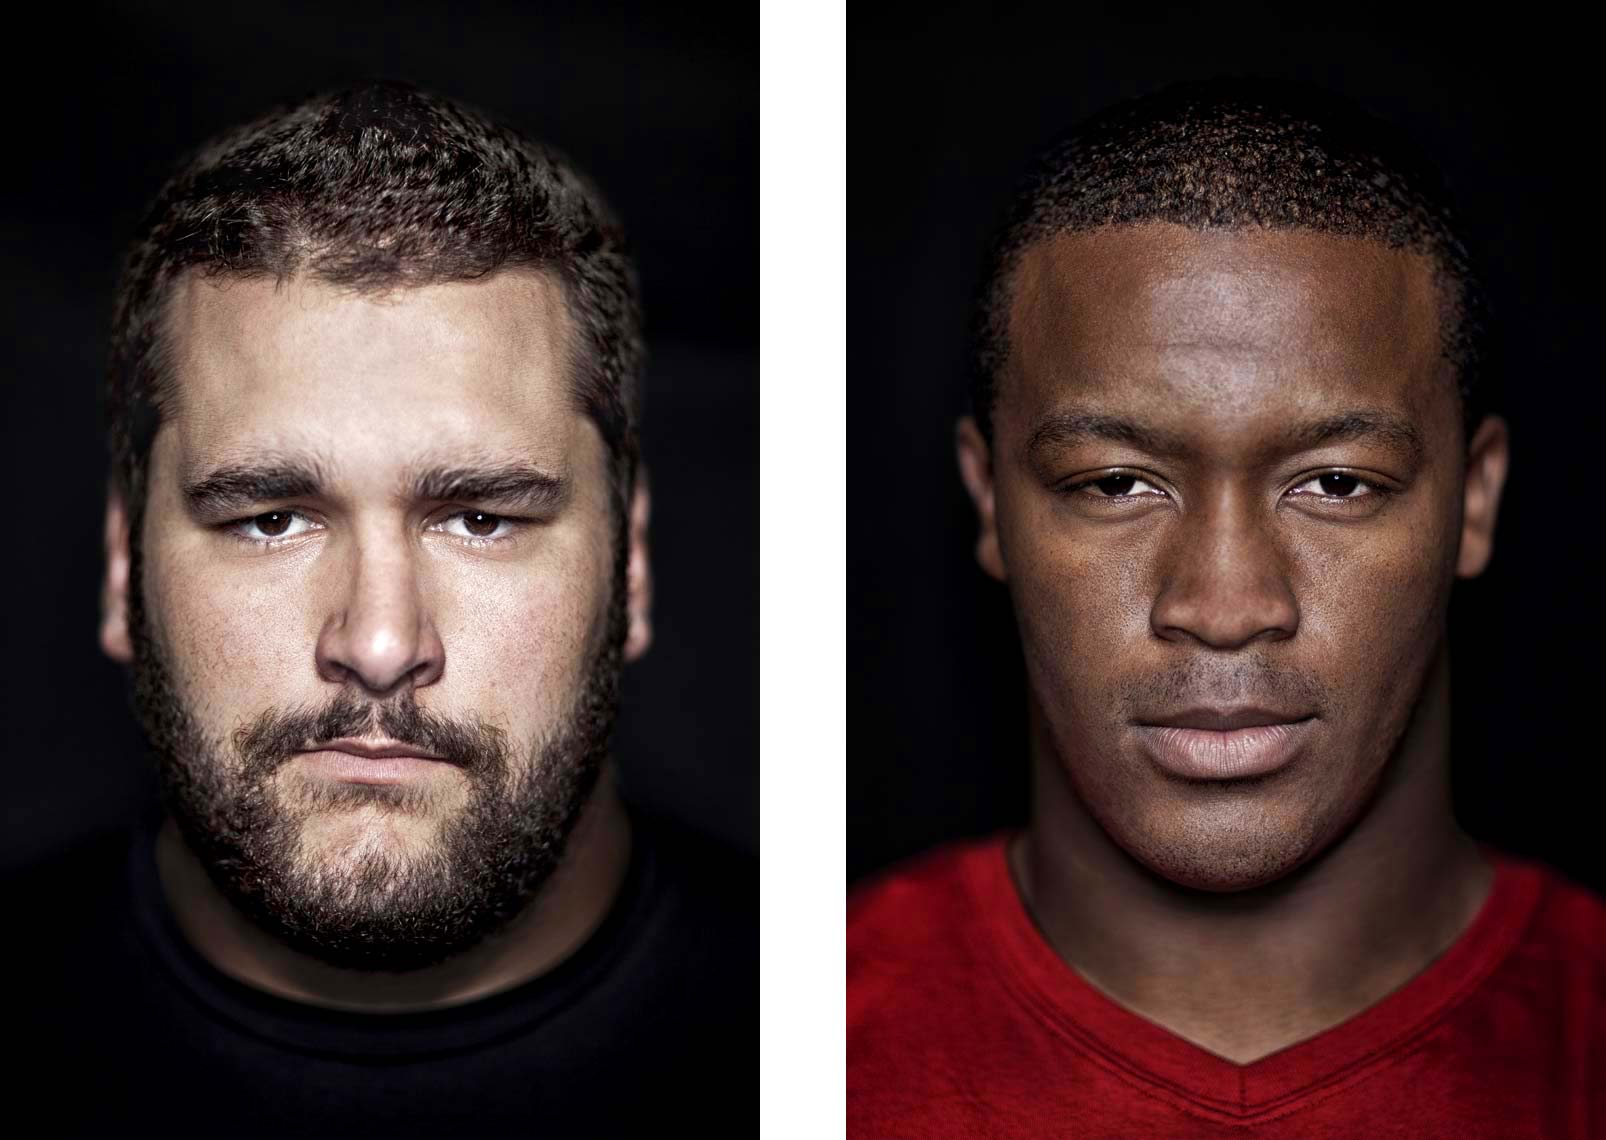 Philadelphia Photographer STEVE BOYLE - Matt Kalil, Demaryius Thomas